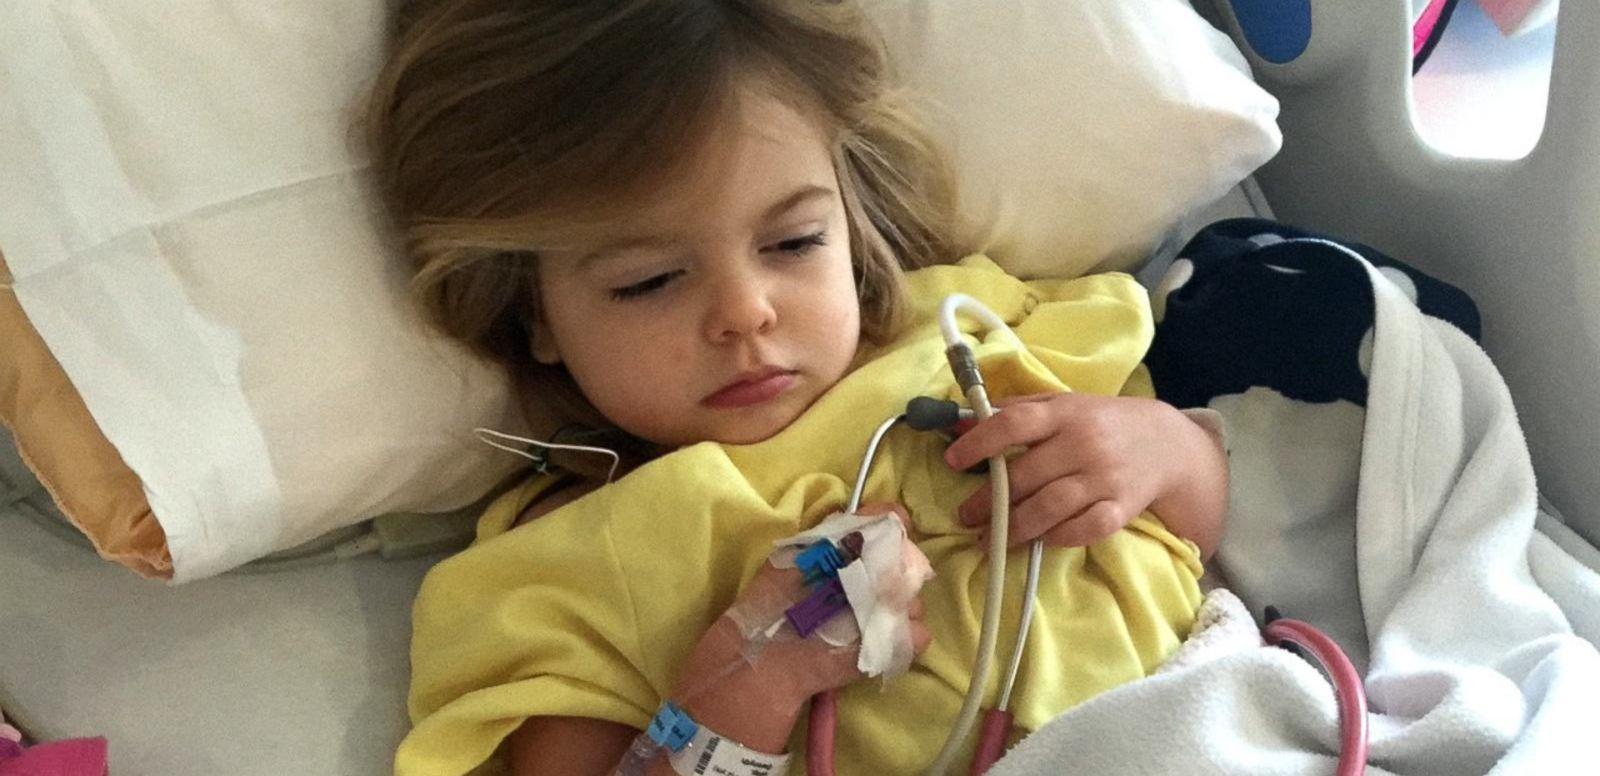 VIDEO: Hollywood Producer Fights to Save Daughters From Rare Disease